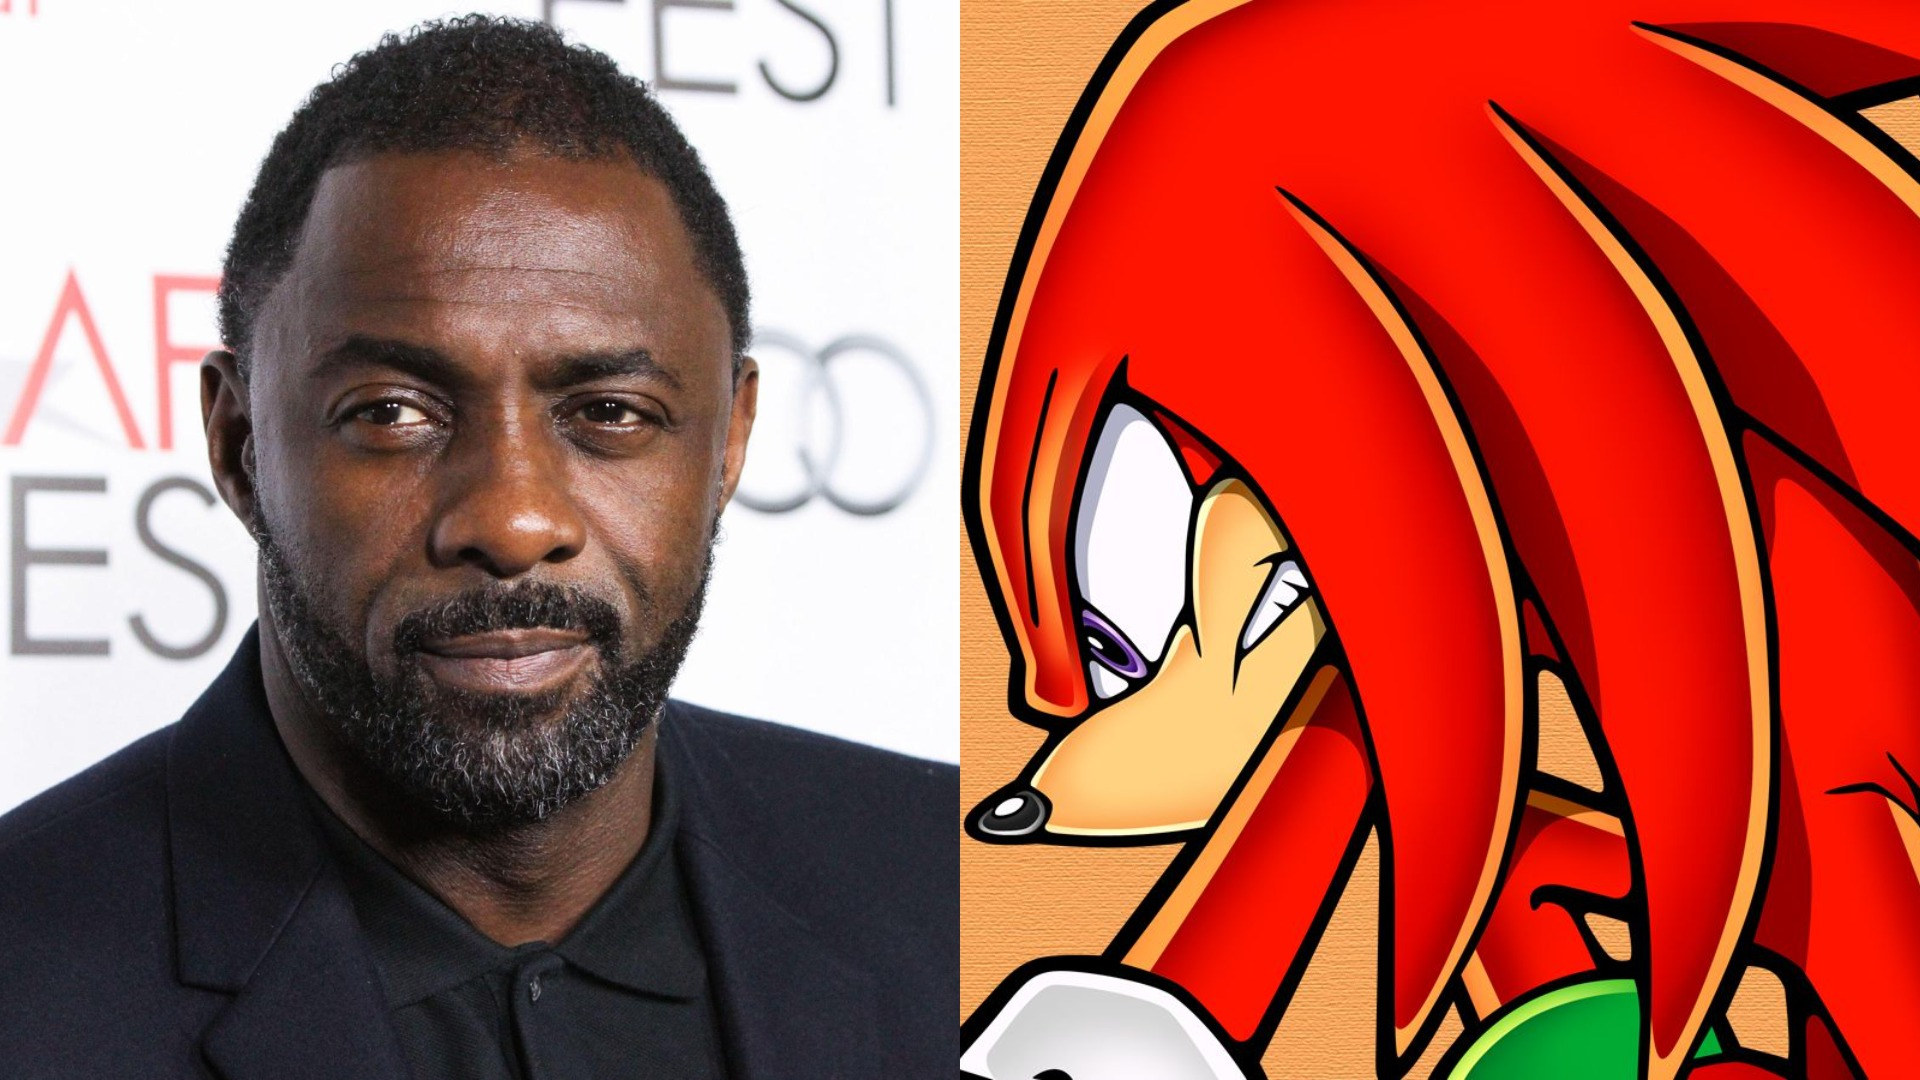 Media outlets are reporting that Idris Elba, who as also confirmed, will be voicing Knuckles in the upcoming Sonic sequel Sonic The Hedgehog 2.